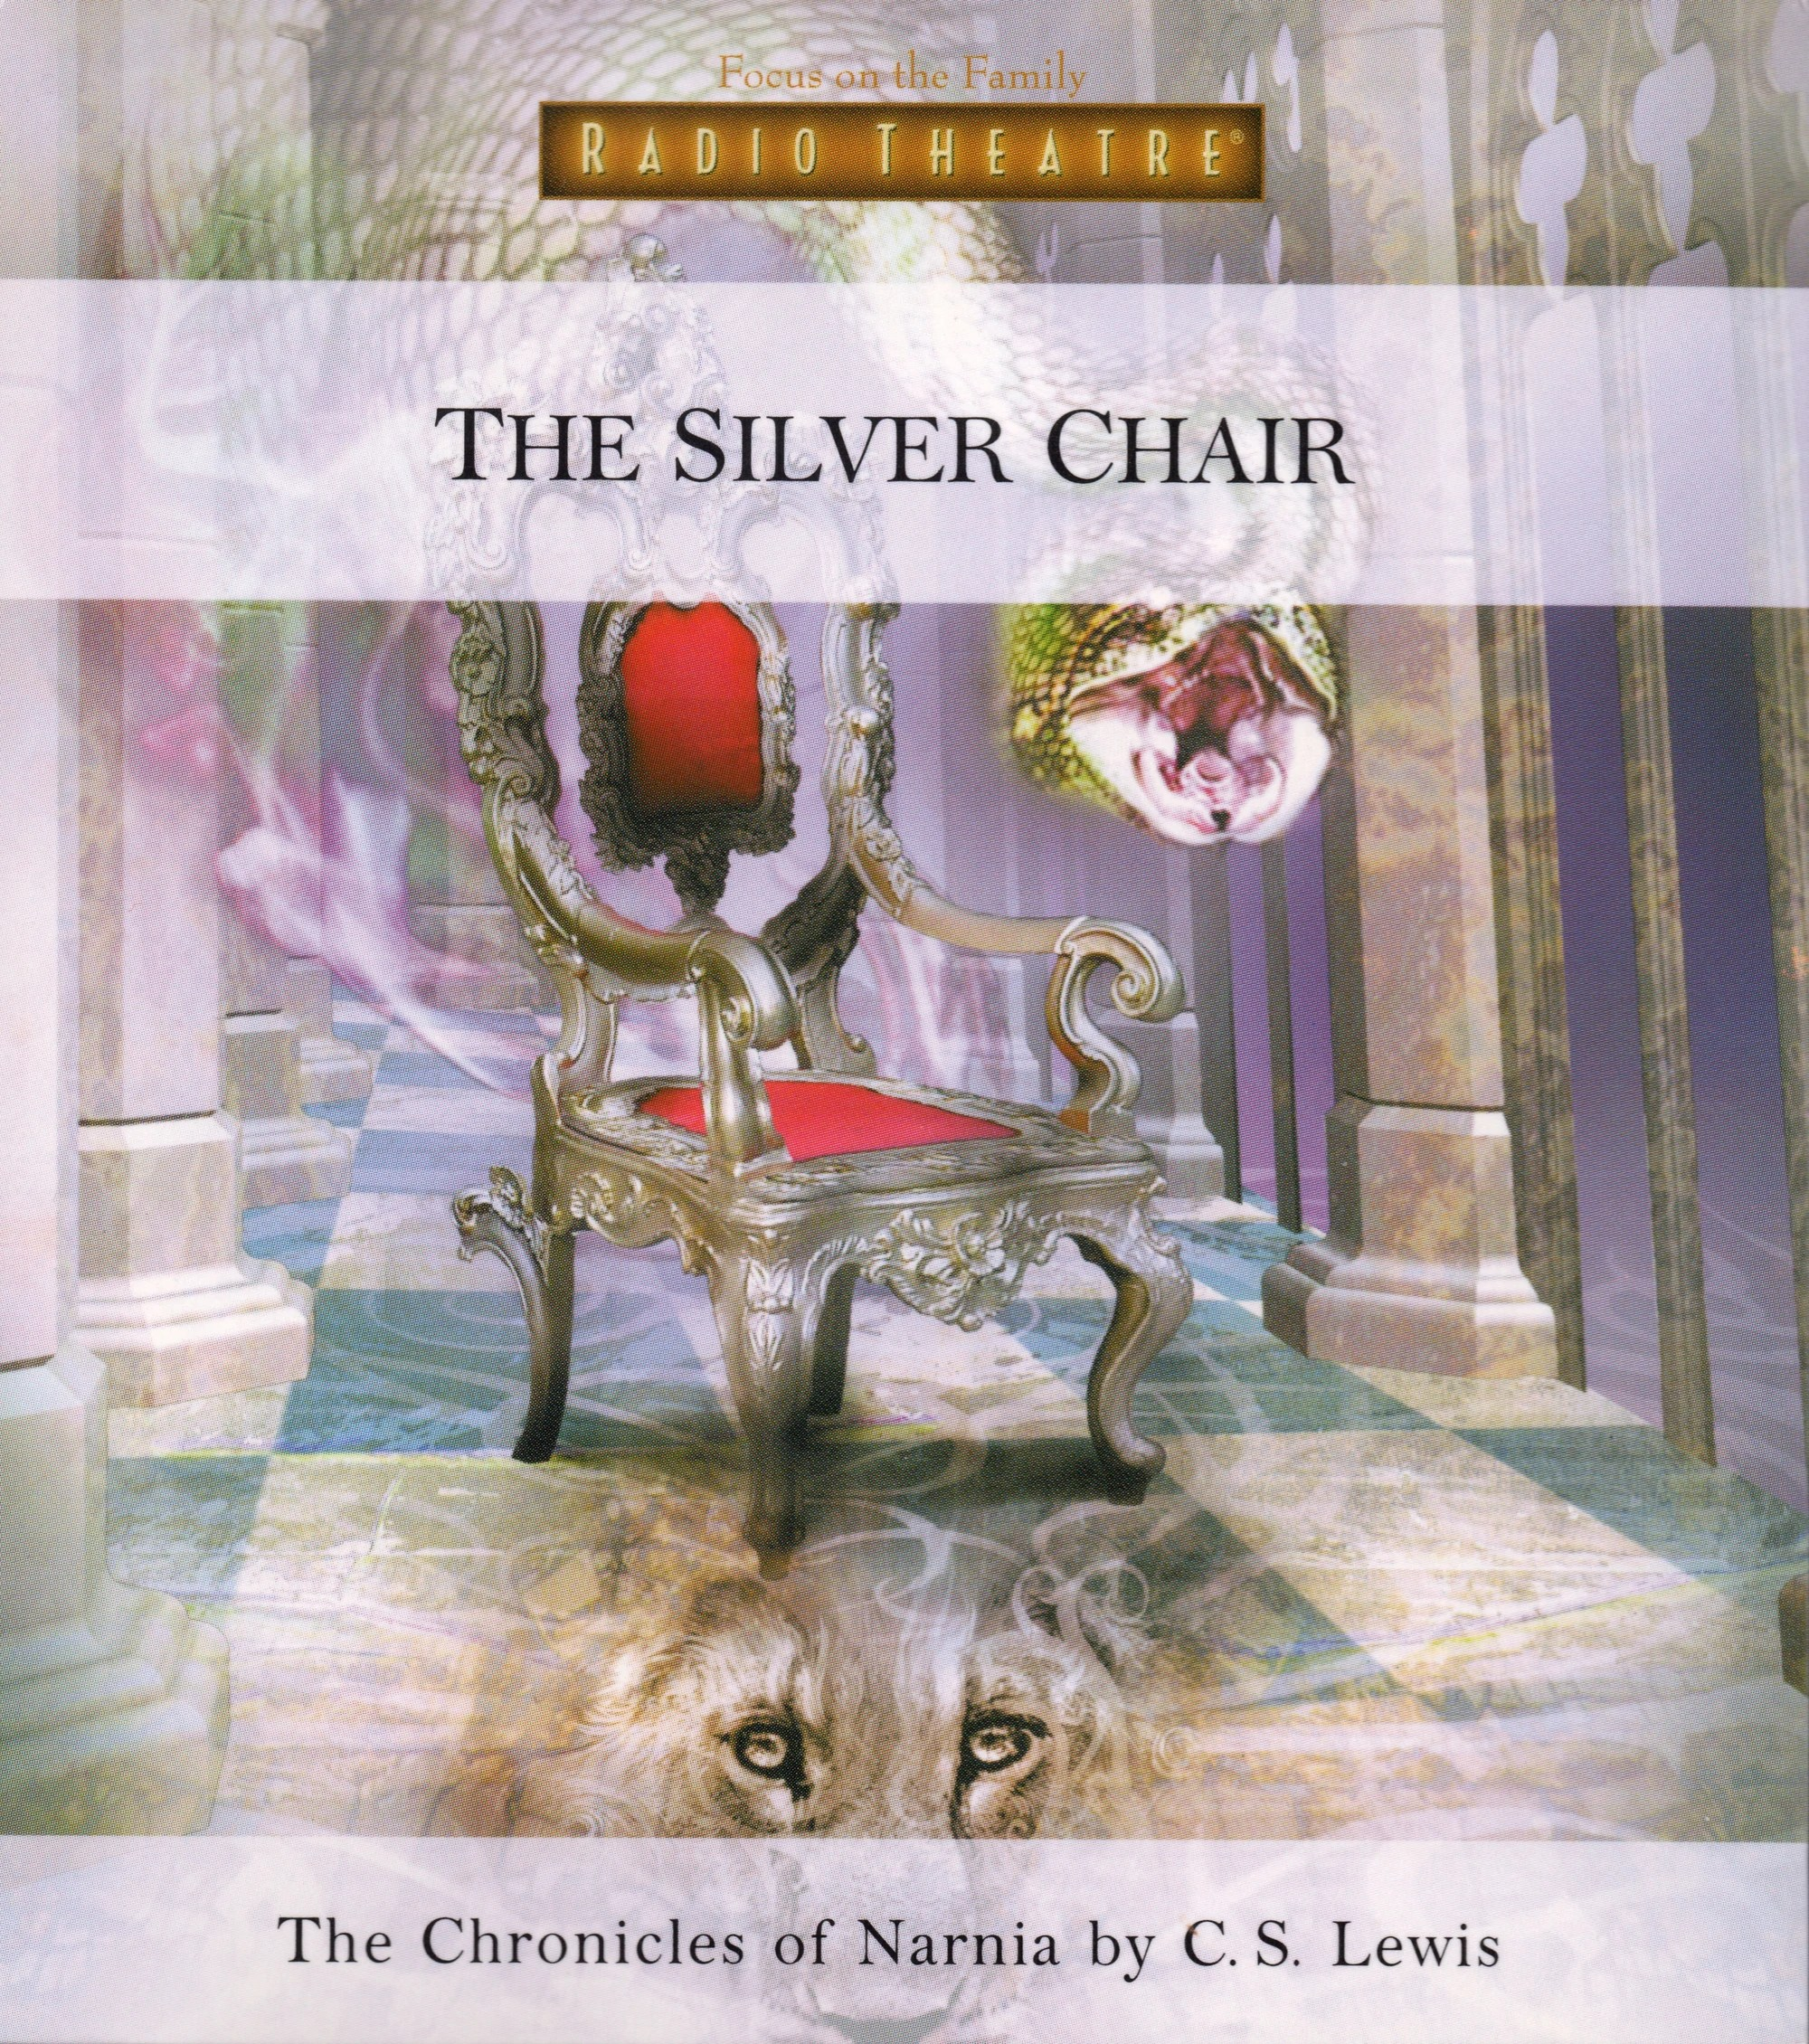 Narnia The Silver Chair The Silver Chair Focus On The Family Radio Theatre The